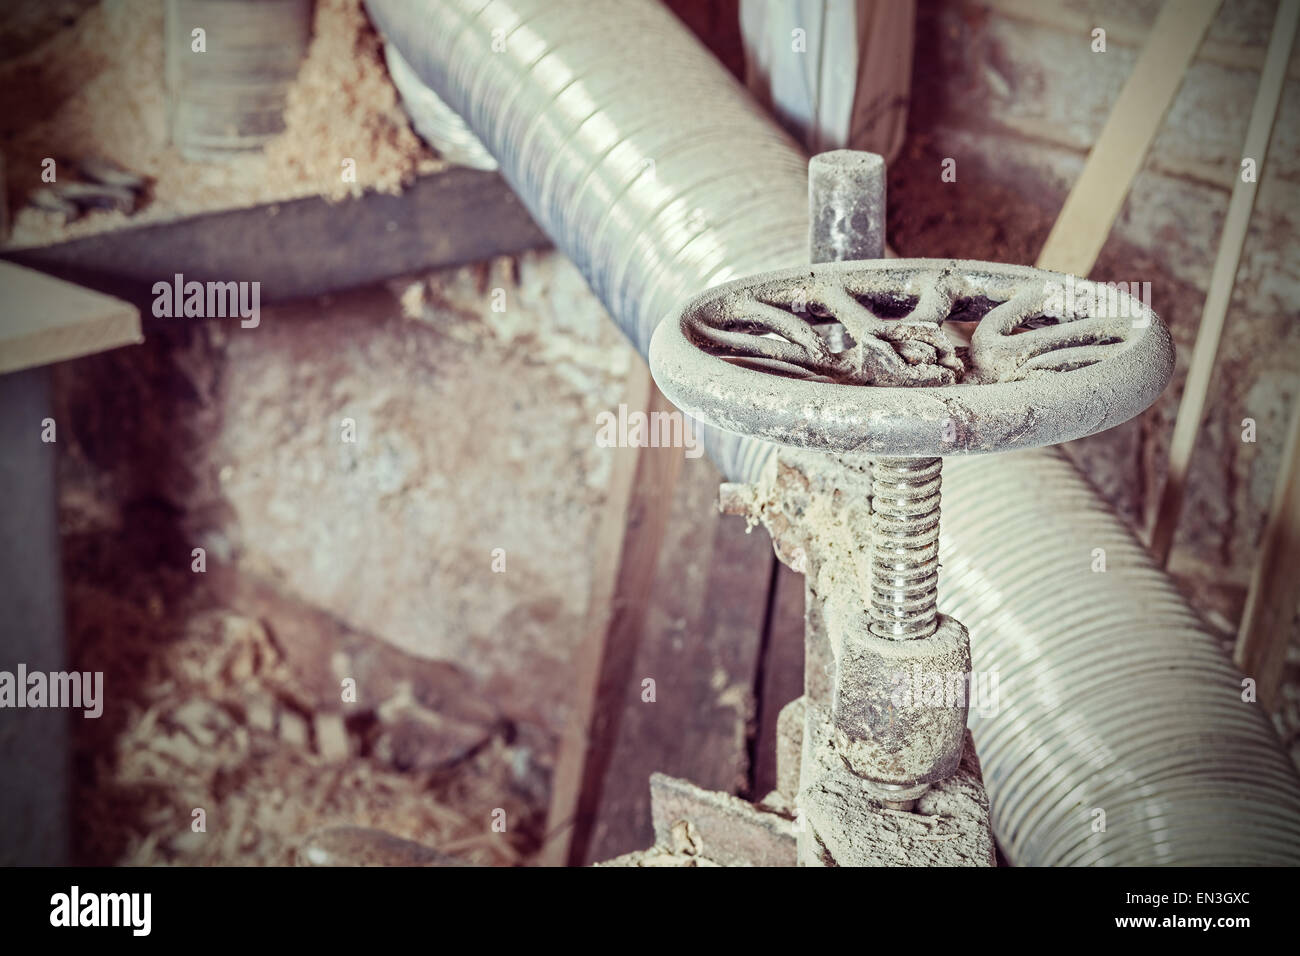 Retro style grungy industrial background. - Stock Image